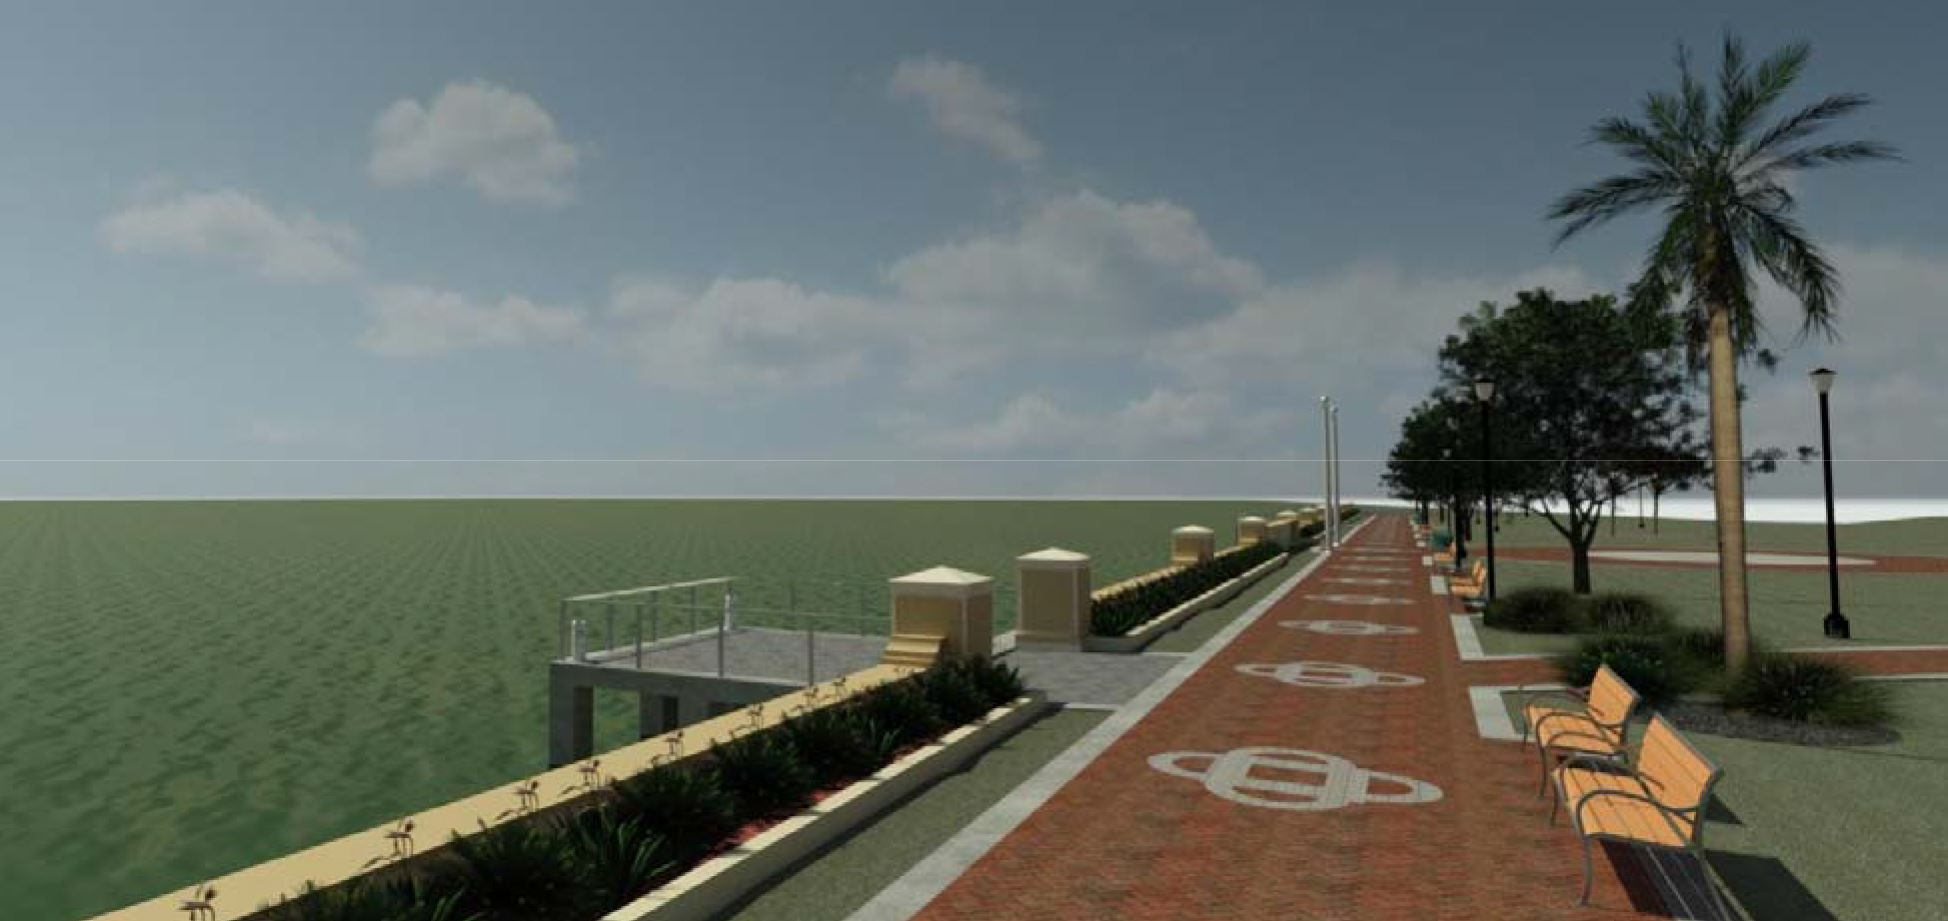 Rendered image of knee-wall concept at Riverfront Park with strip of grass, planter, and knee-wall